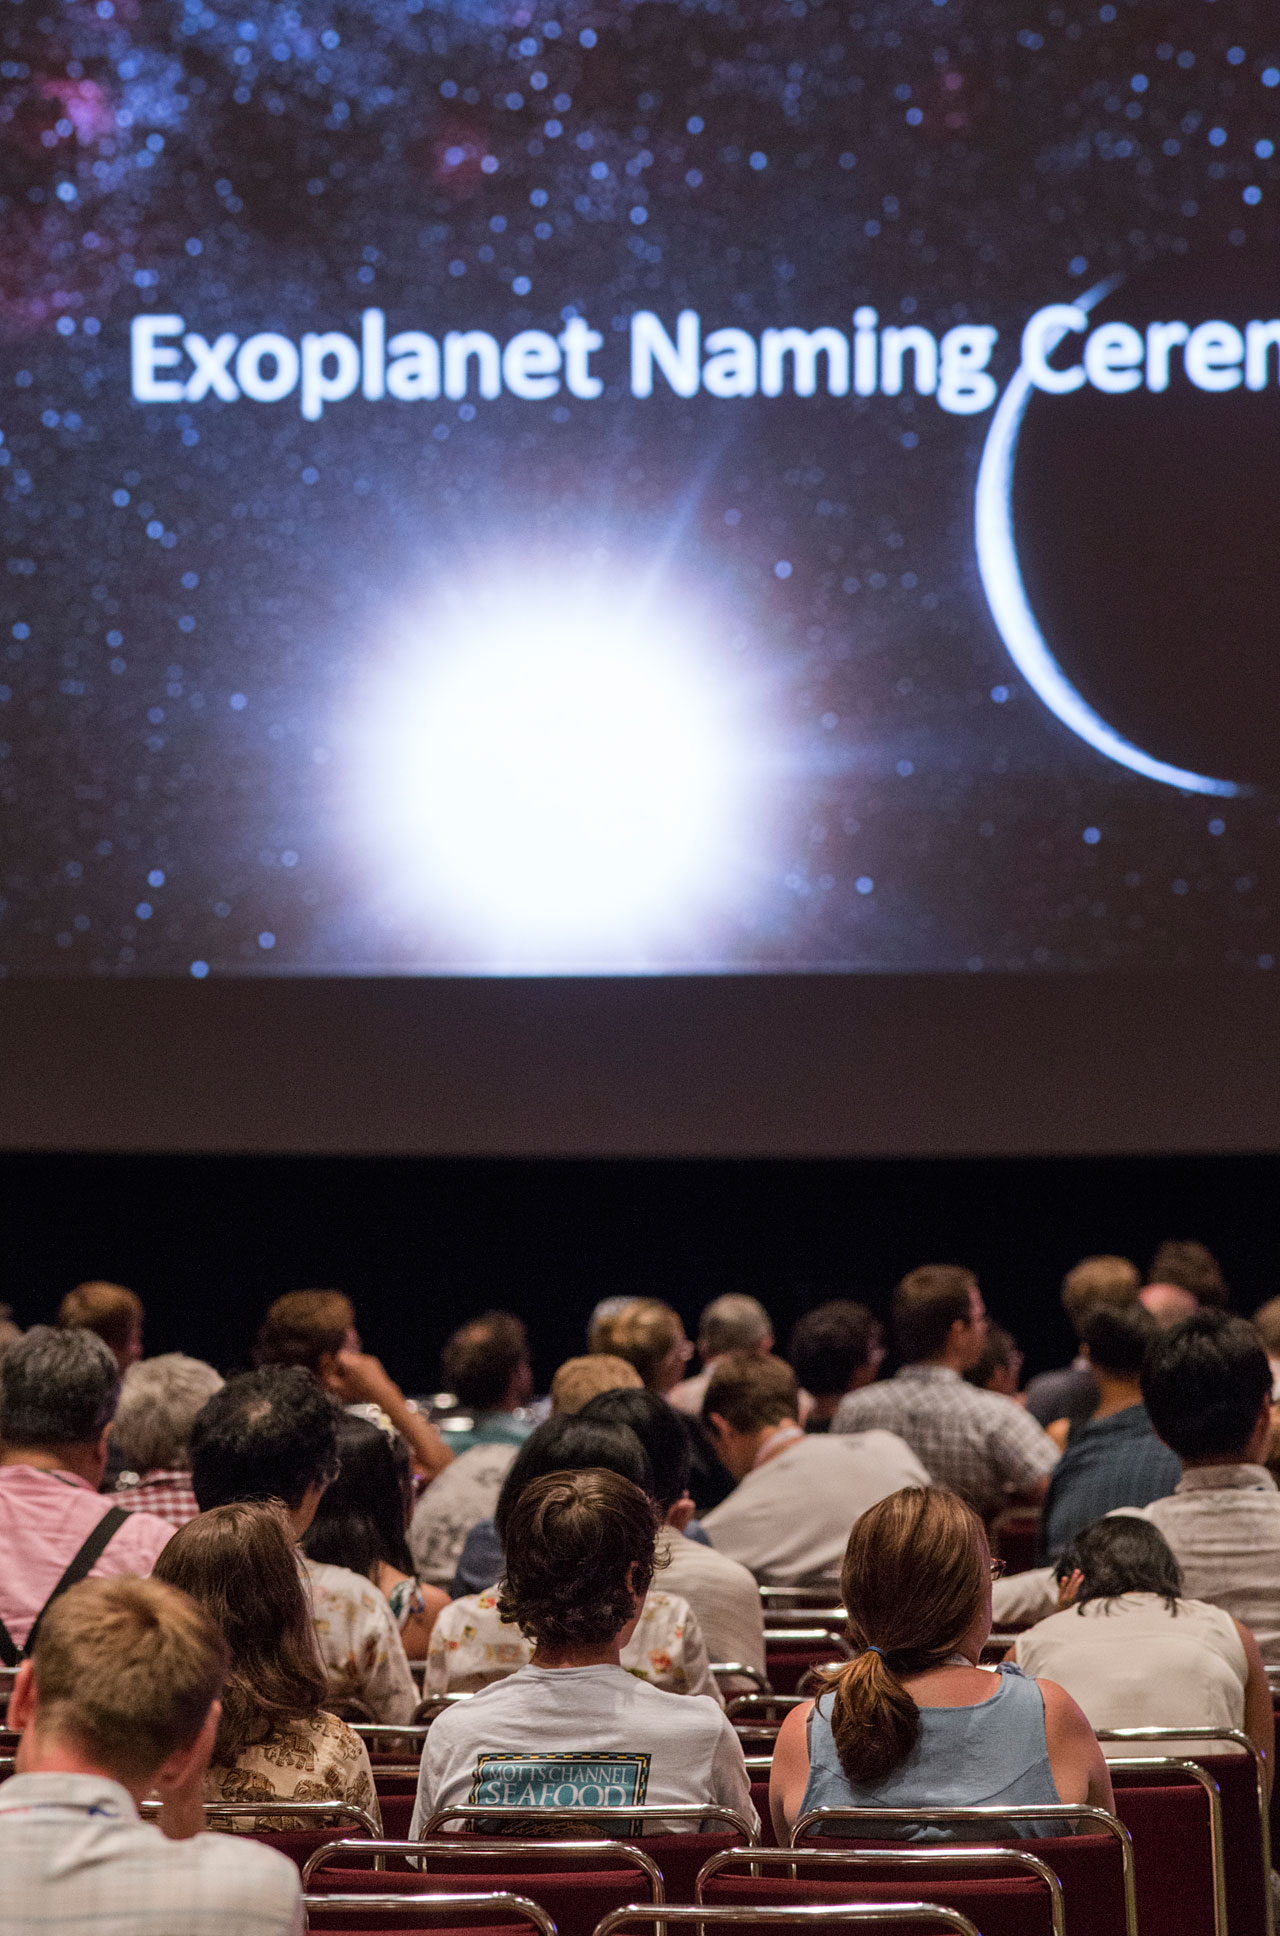 Exoplanet Naming Ceremony at the IAU XXIX General Assembly